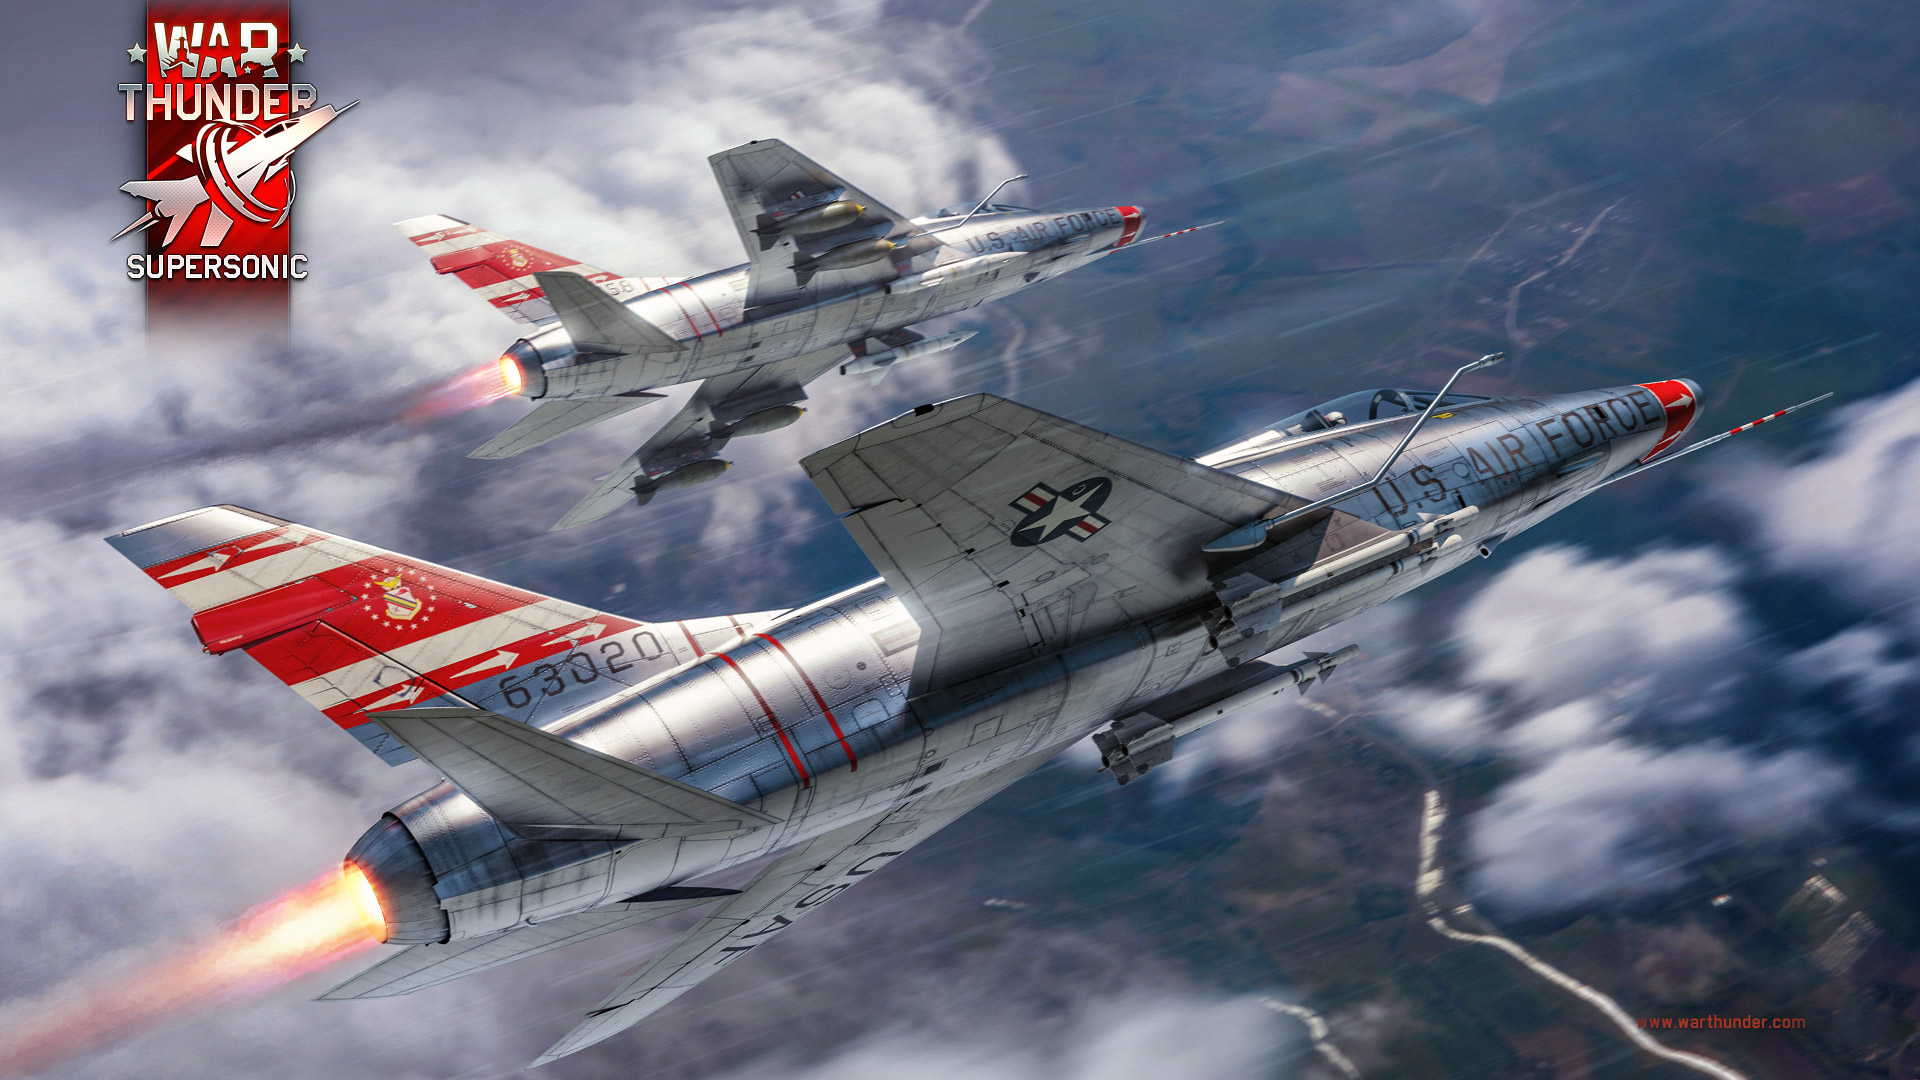 warthunder-1-85-supersonic-f100d_h8y8.jpg